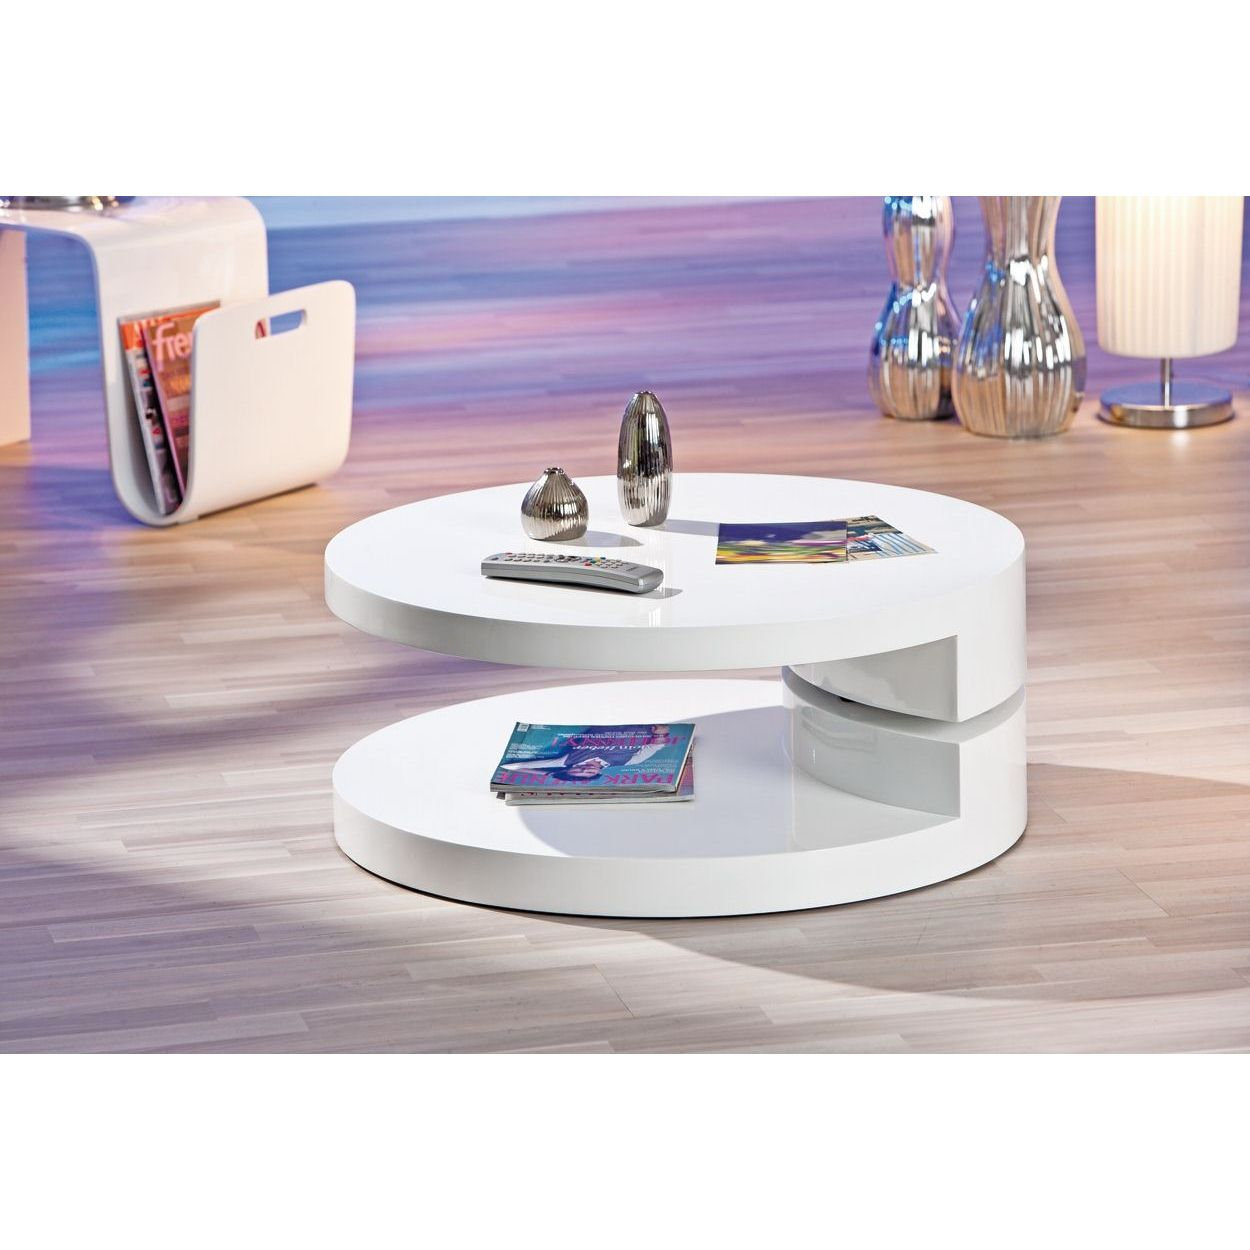 Deco in paris table basse laque blanc ronde extensible for Table salon laque blanc